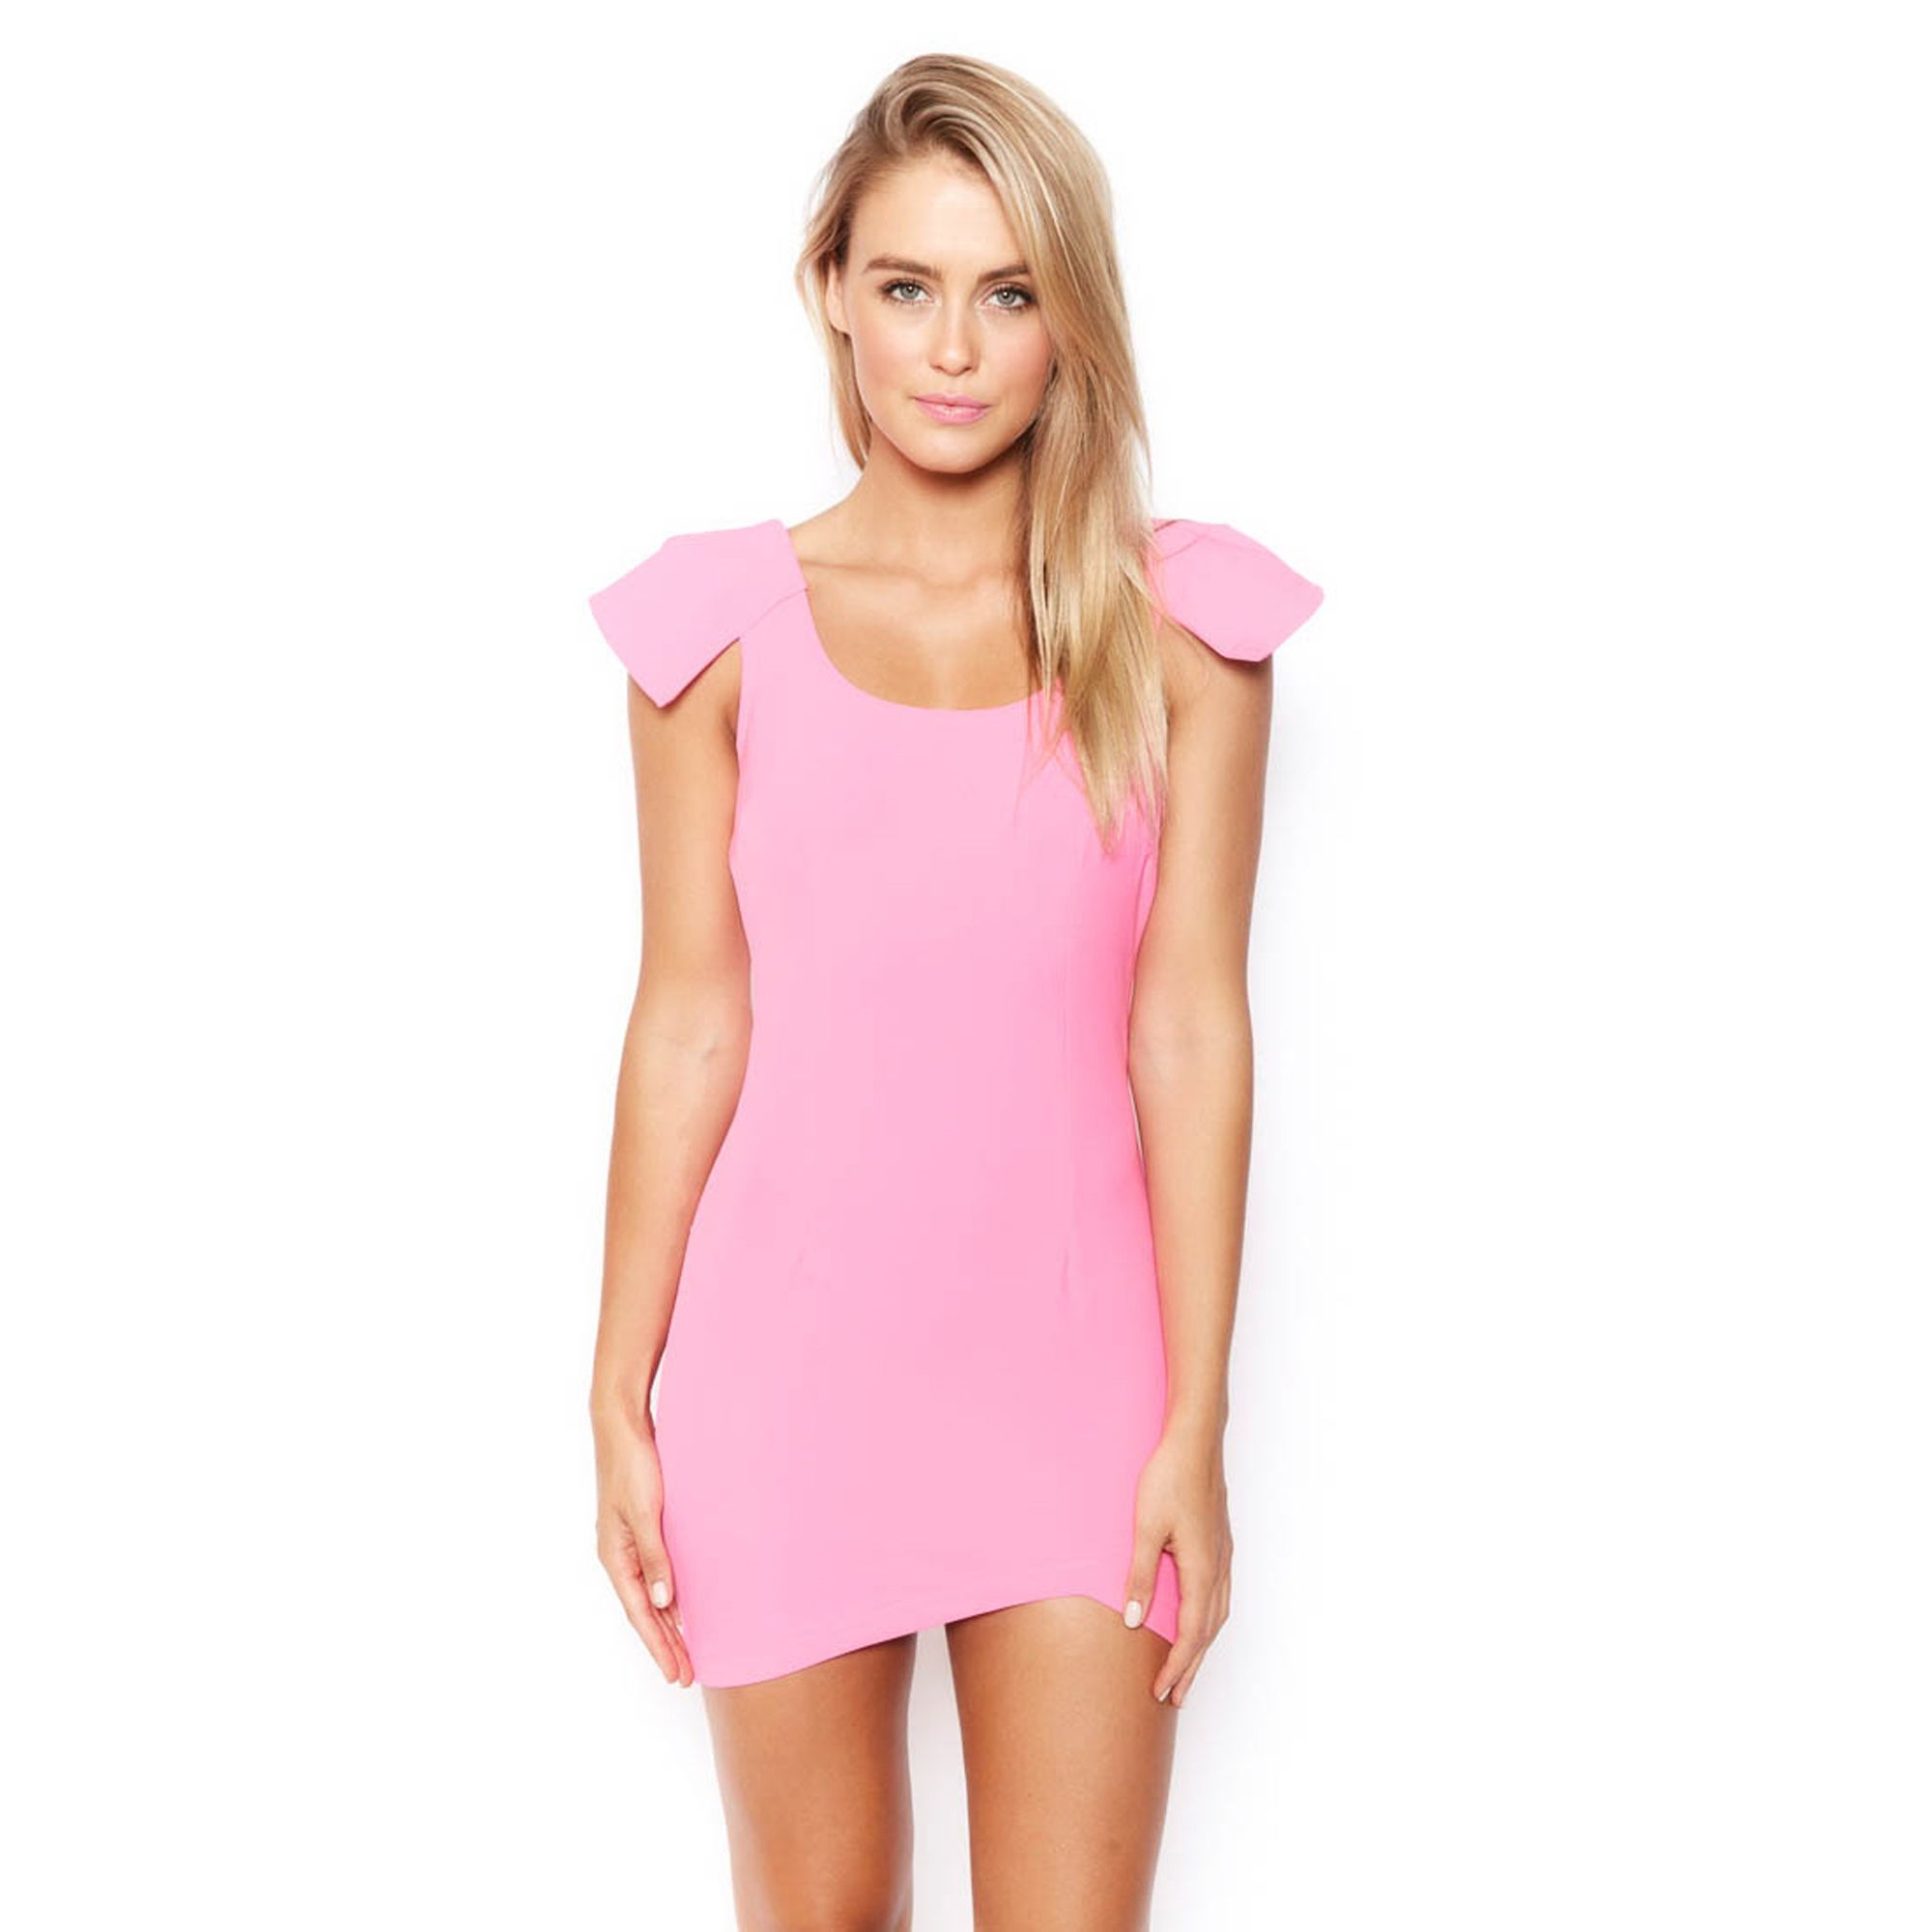 3c6c790a57a2c WINGS FOR DREAMERS MINI DRESS - NEON PINK